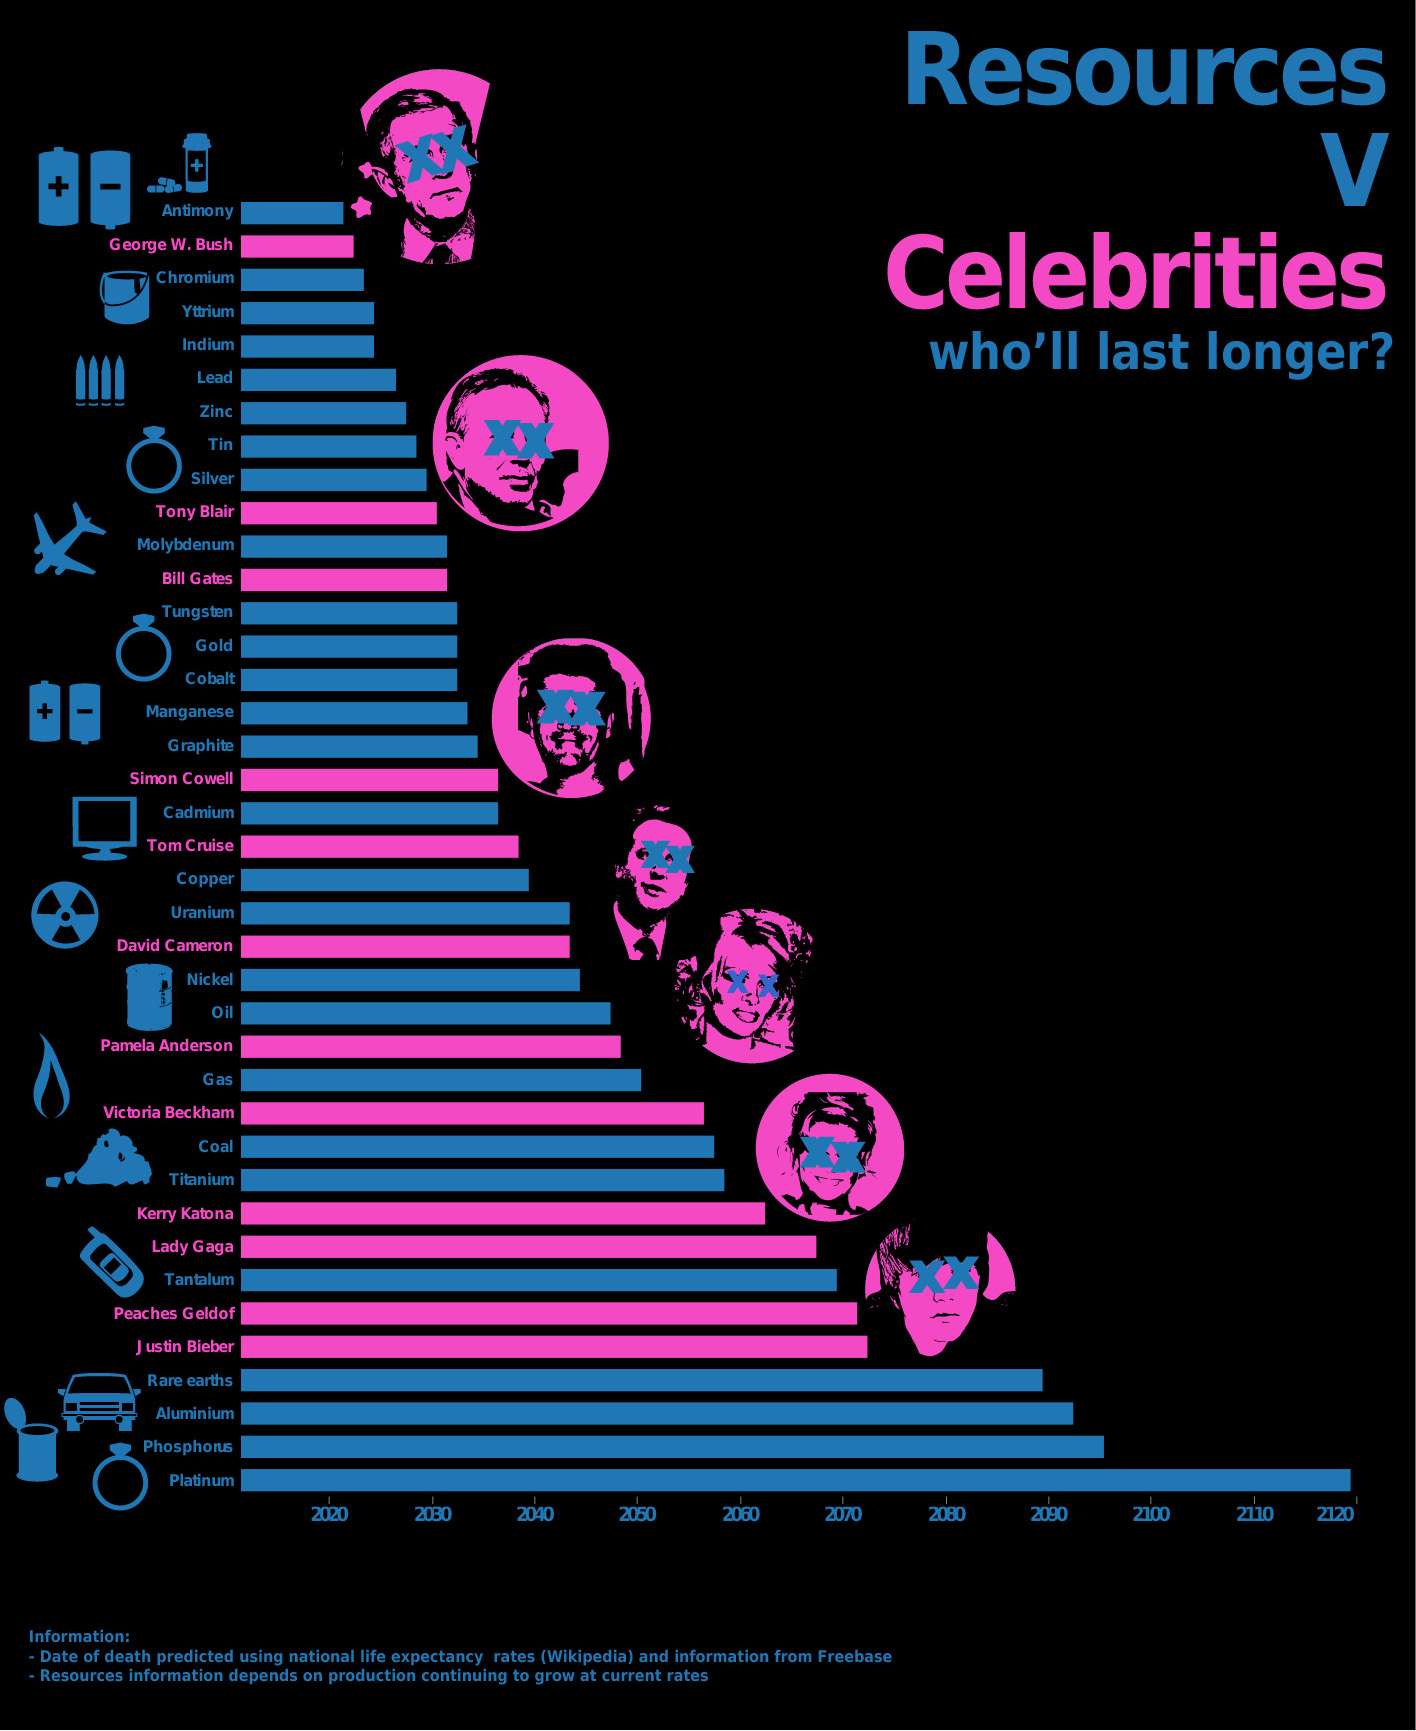 Resources V Celebrities